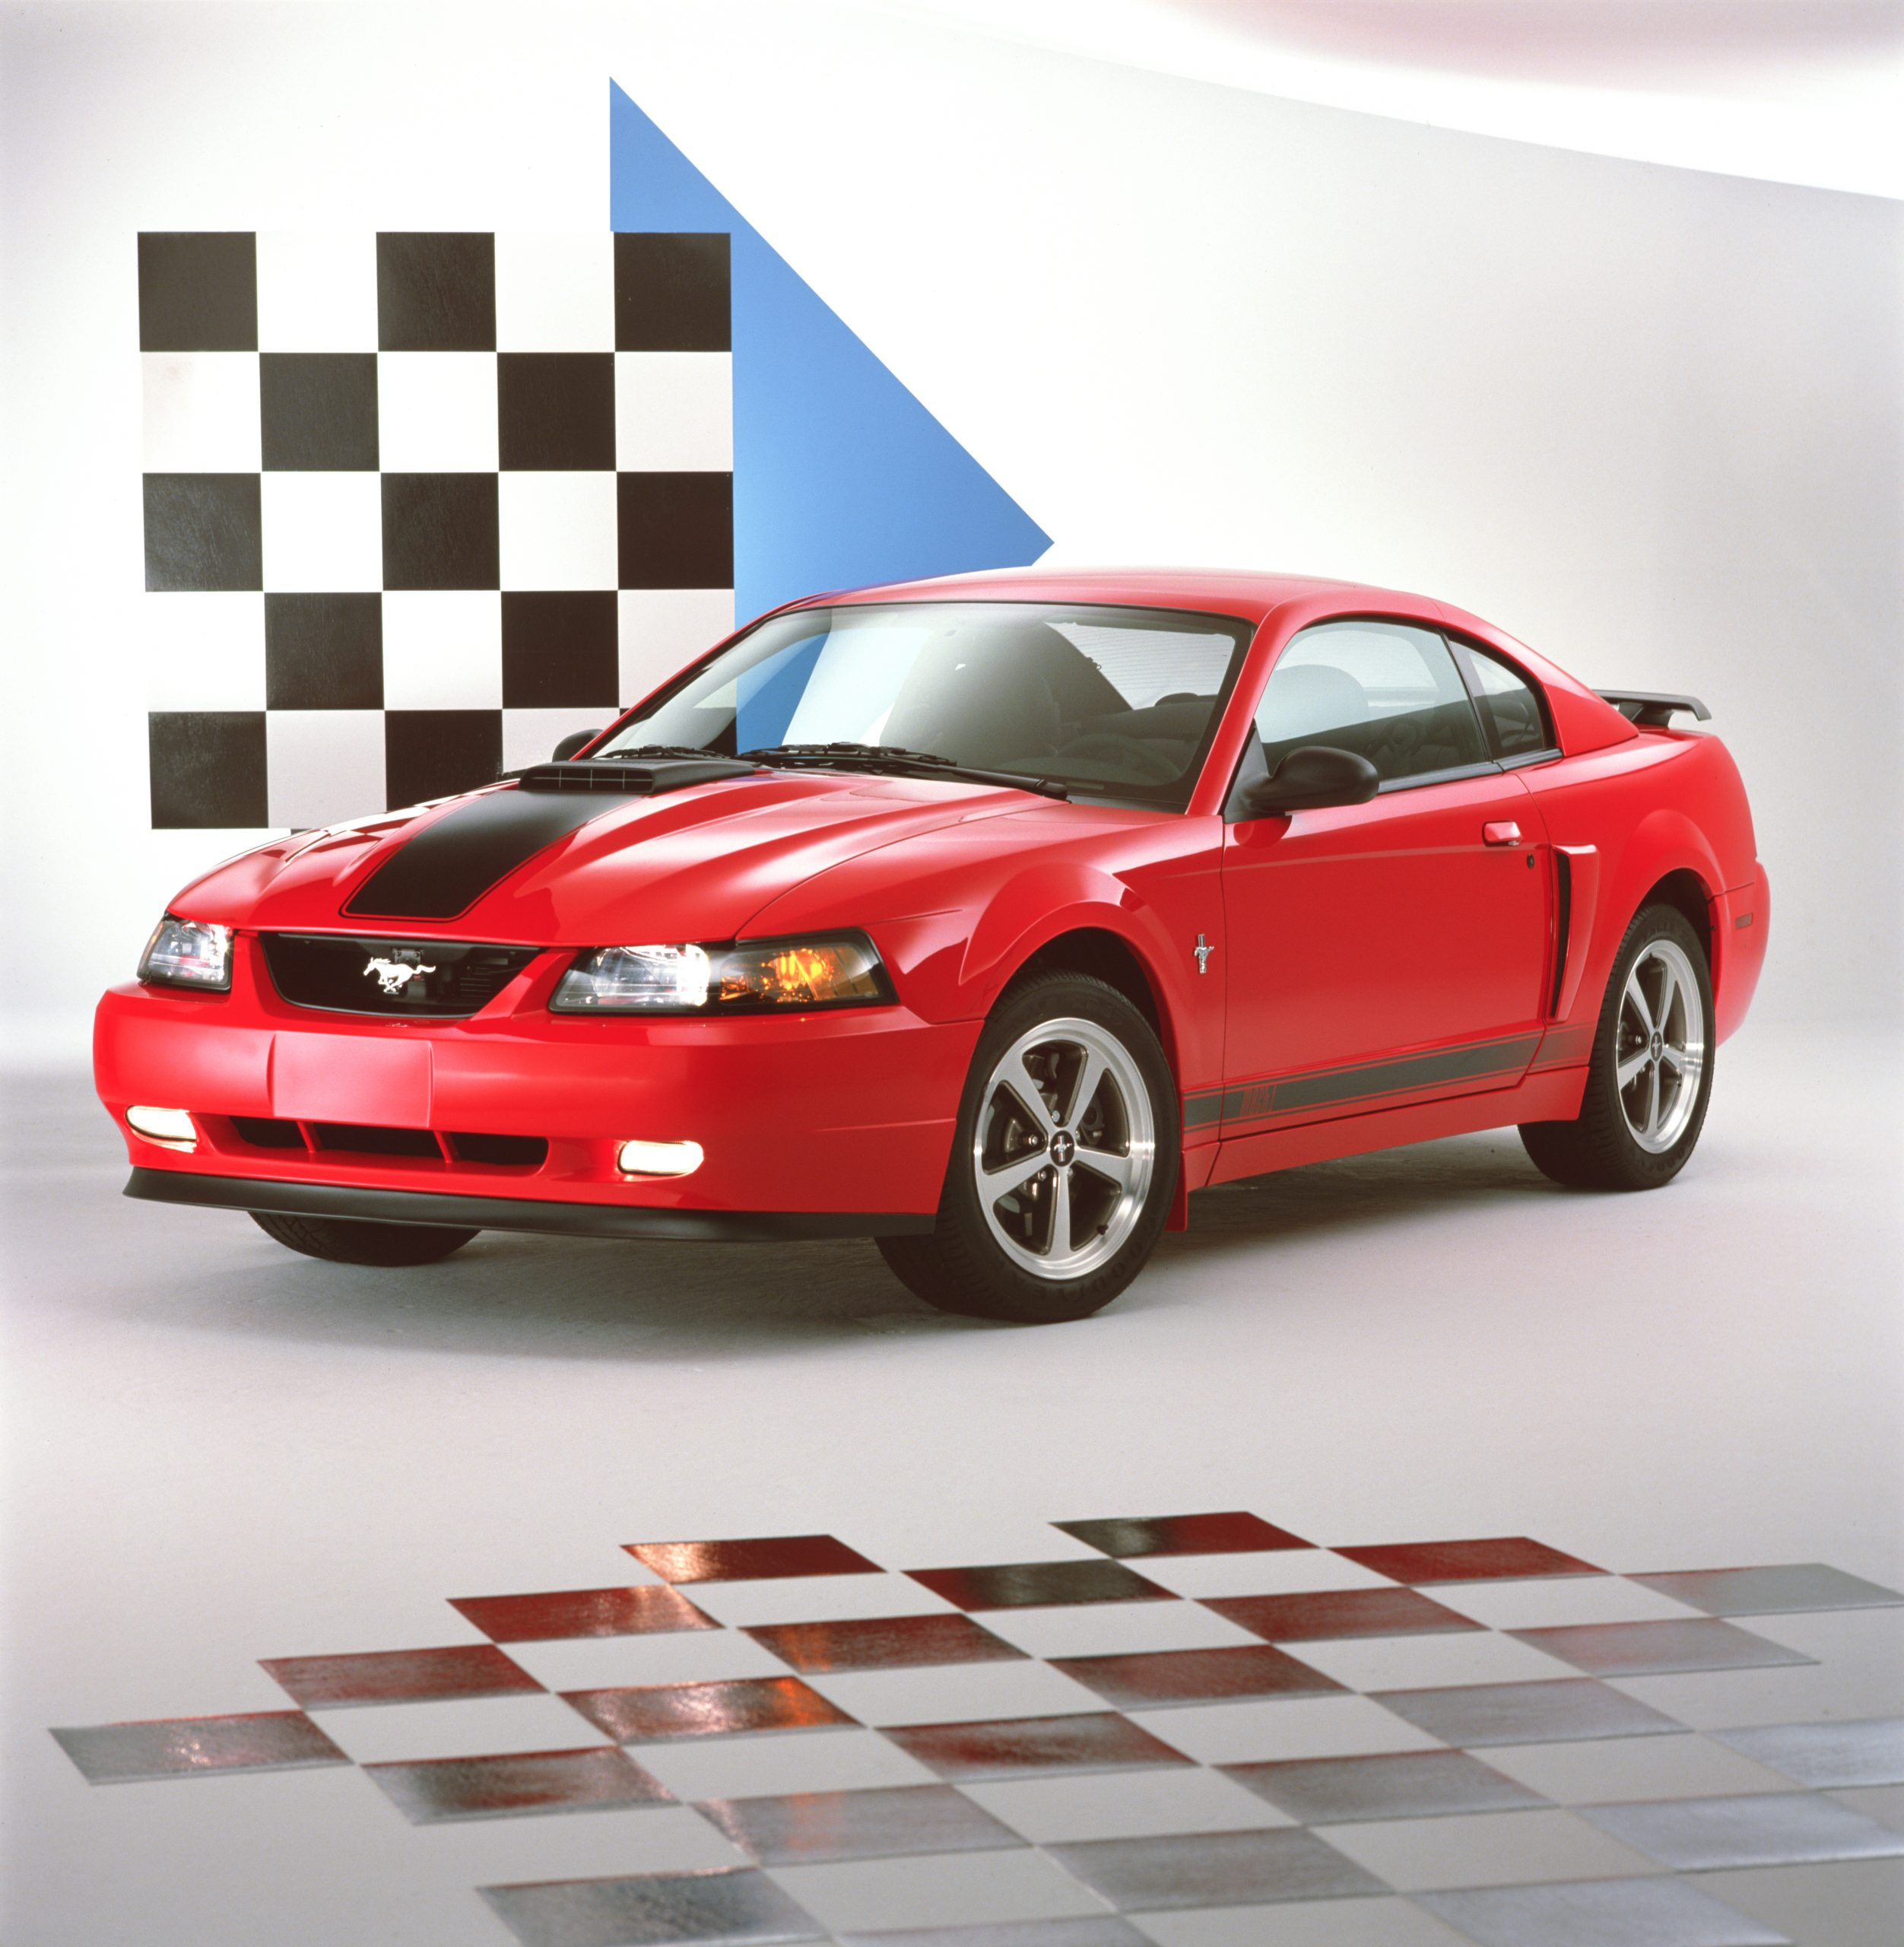 2003 Ford Mustang Mach 1 Coupe Front Three-Quarter Checkered Flag